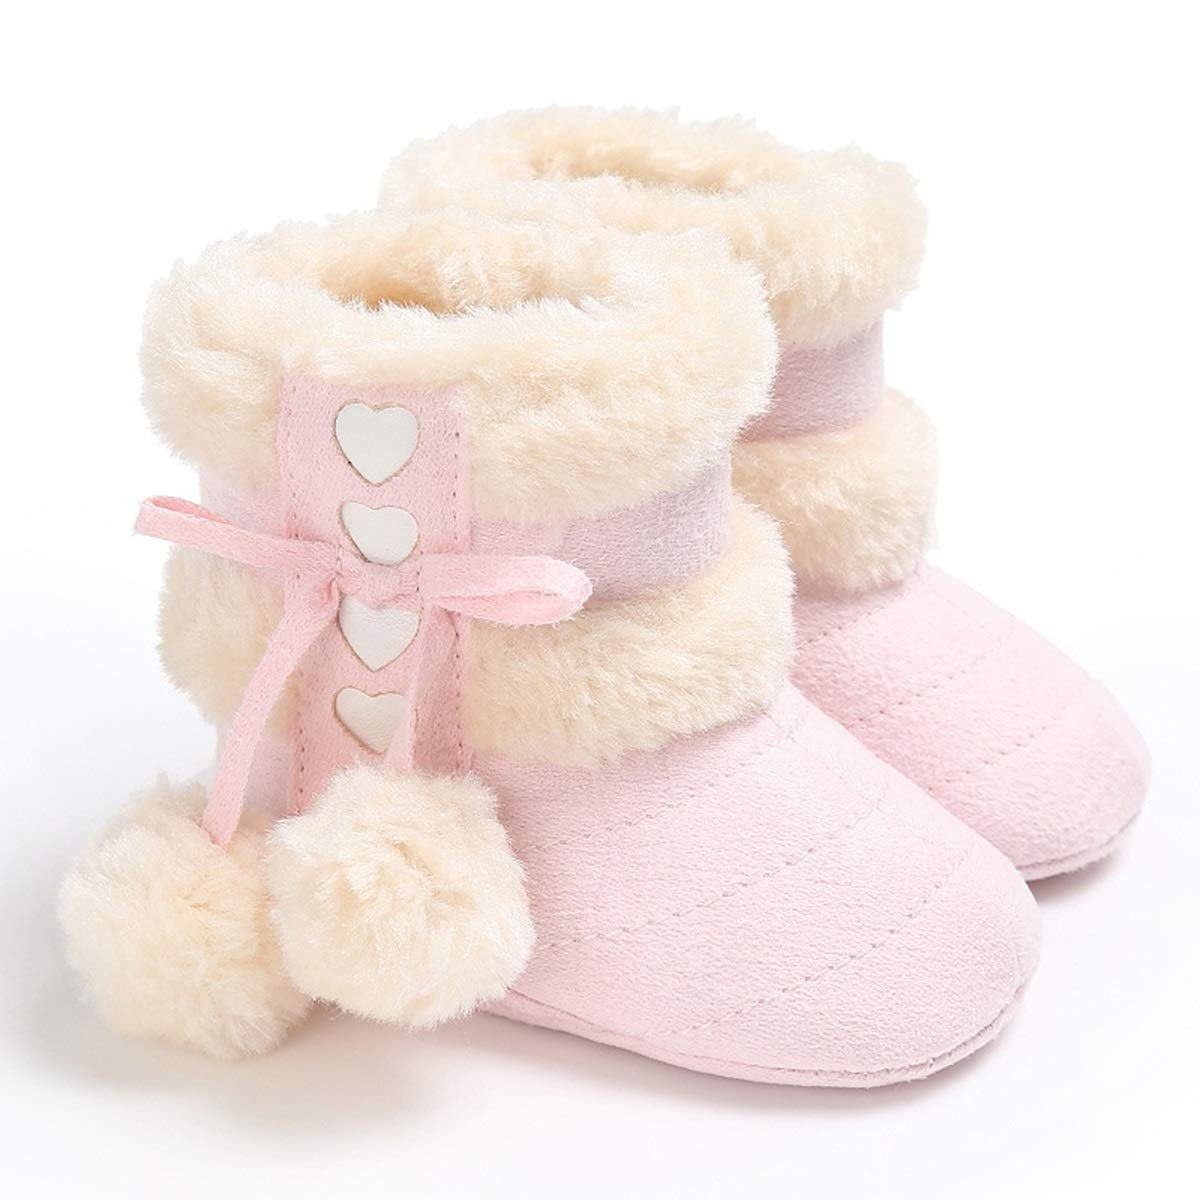 12cm Pink Size Jinxuny Warm Boots Newborn Baby Girls Boys Pom Pom Ball Fleece Plush Lined Winter Warm Snow Boots Non-Slip Shoes Color for 6-9Months